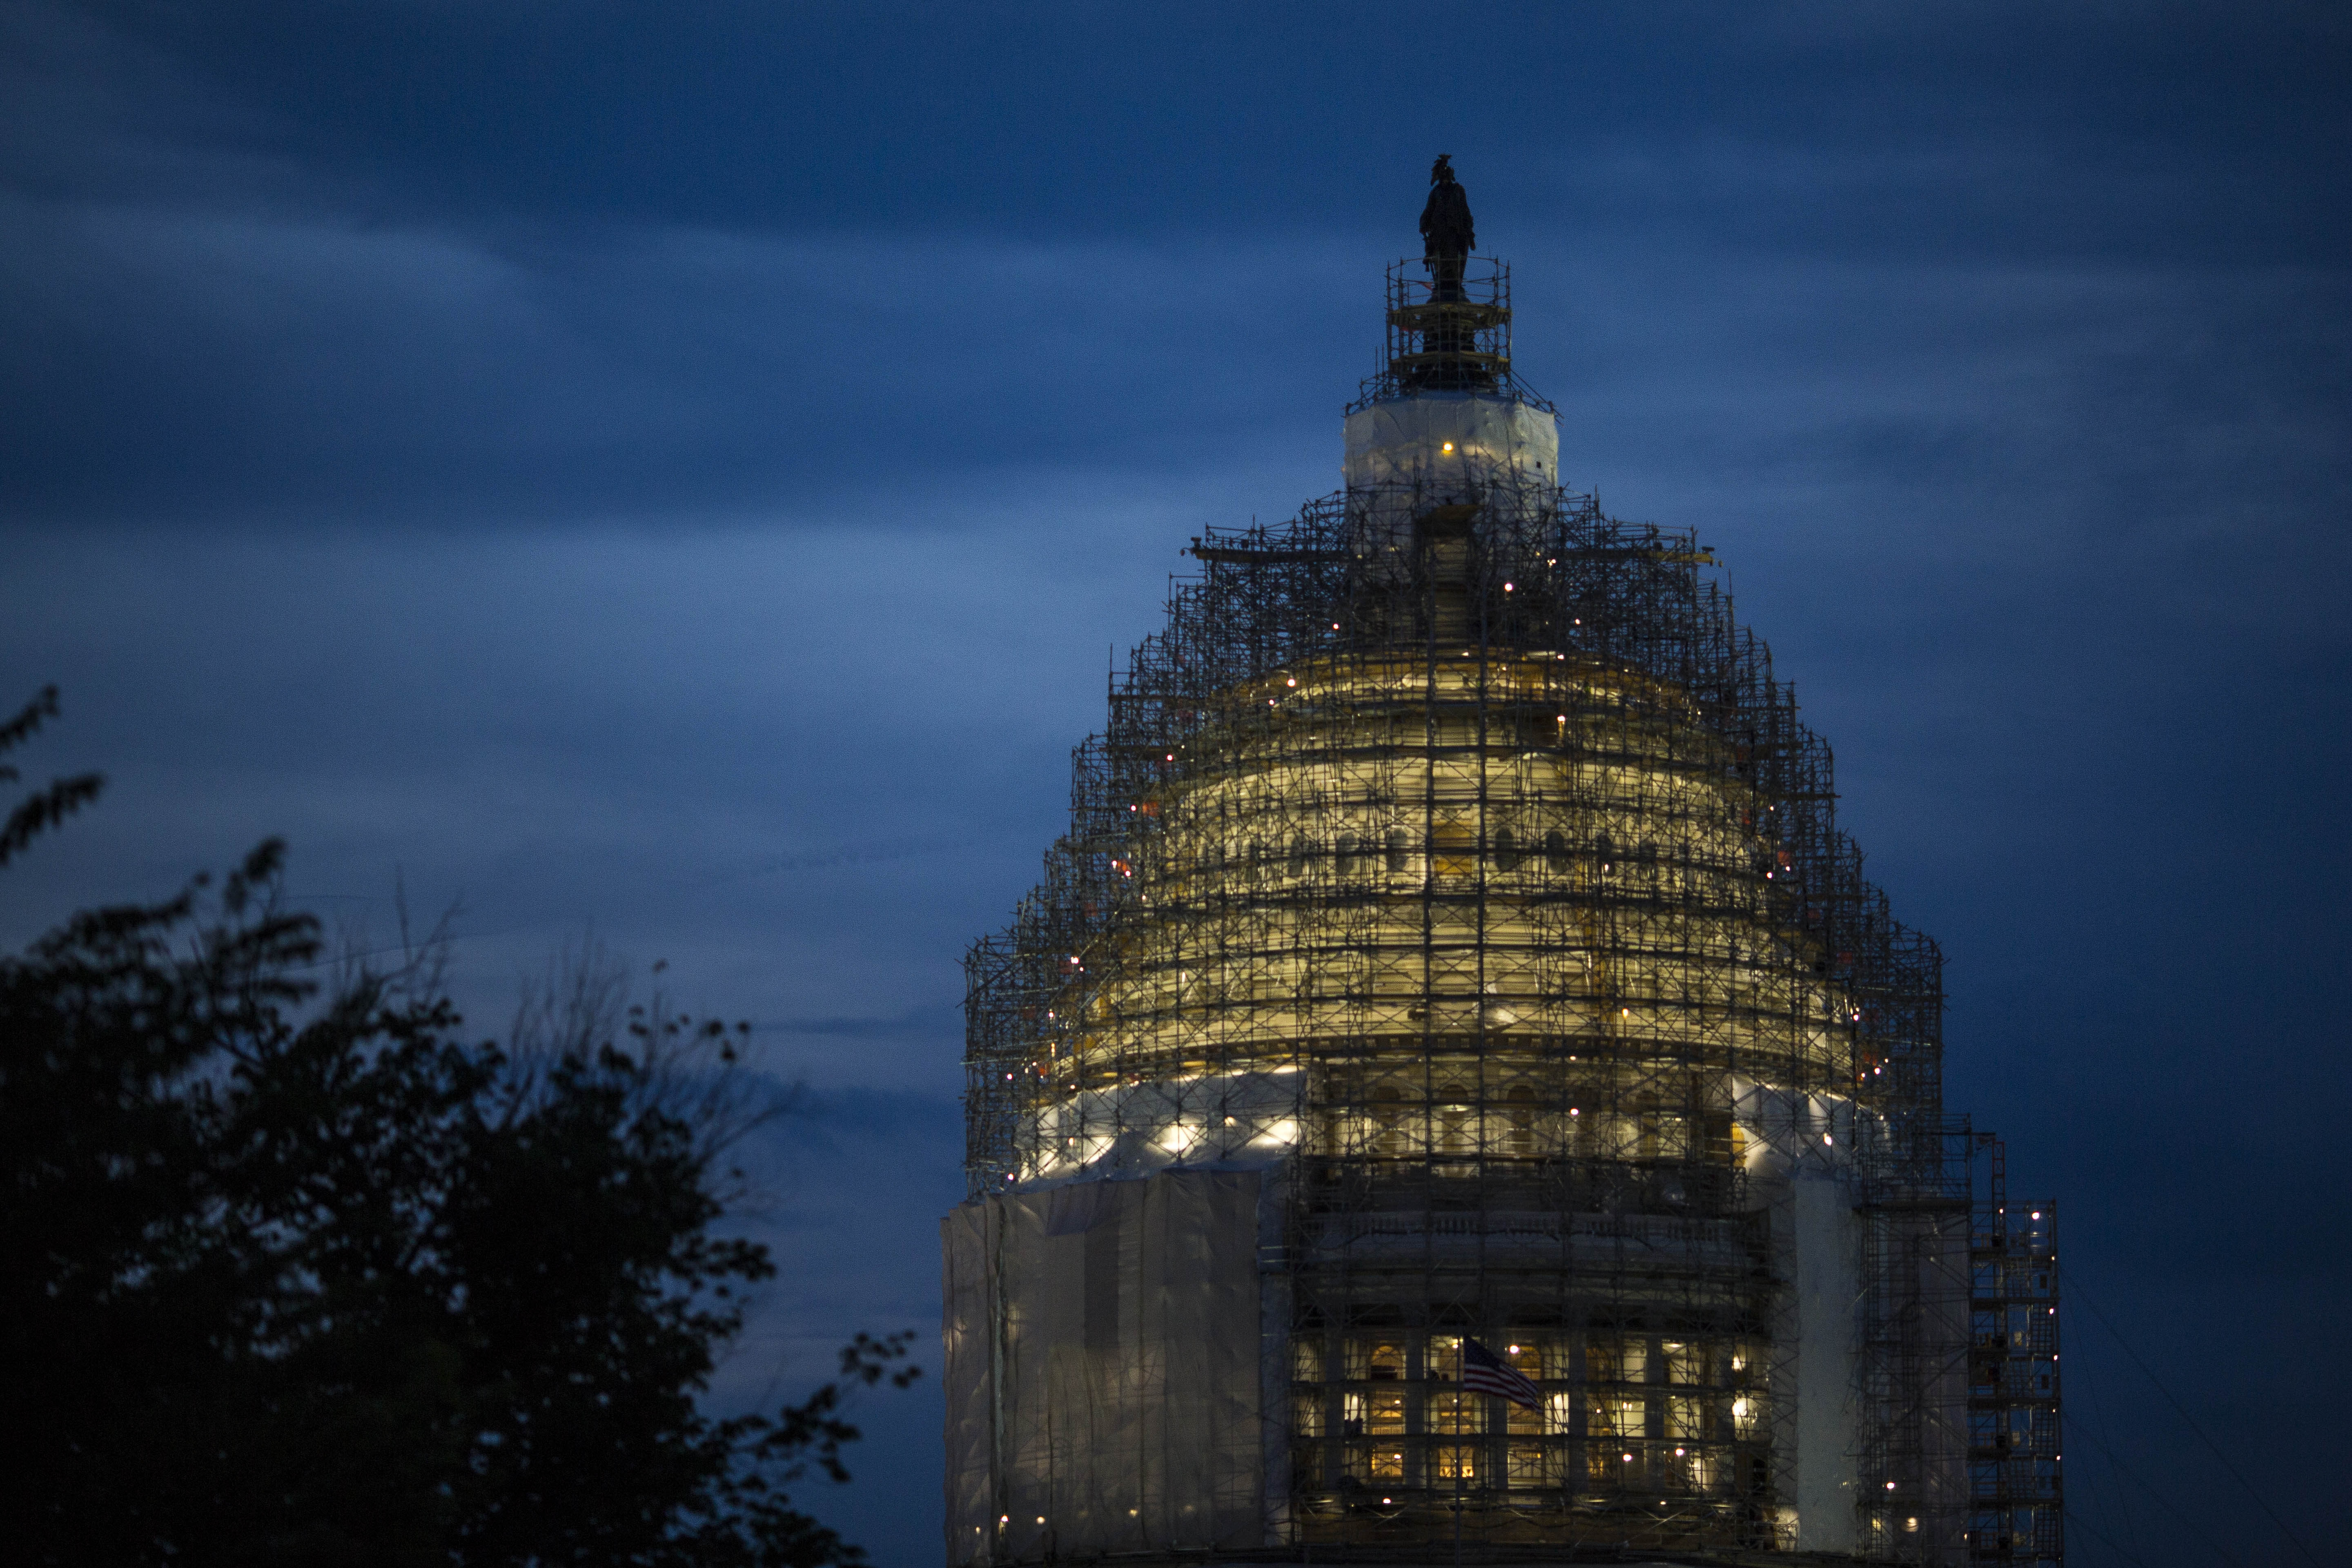 Congress managed to reach agreement on the USA Freedom Act, which balances national security with privacy rights. (Getty Images)